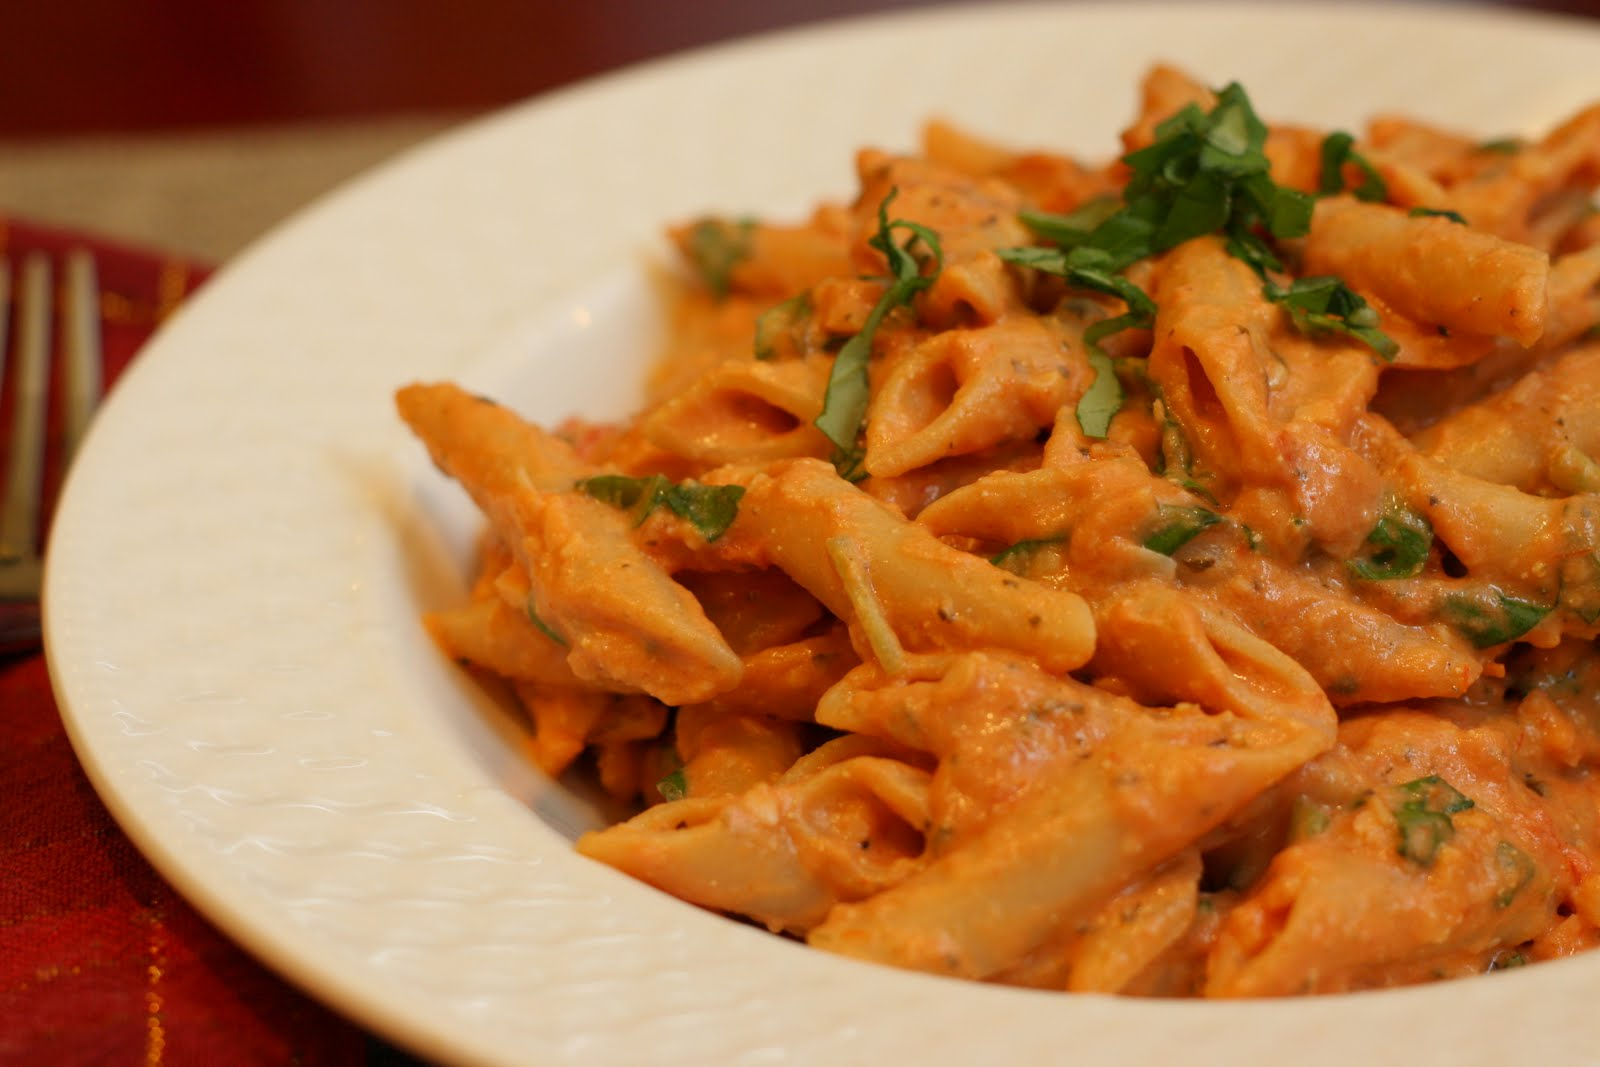 The Bitchin' Kitchin': Penne Alla Vodka